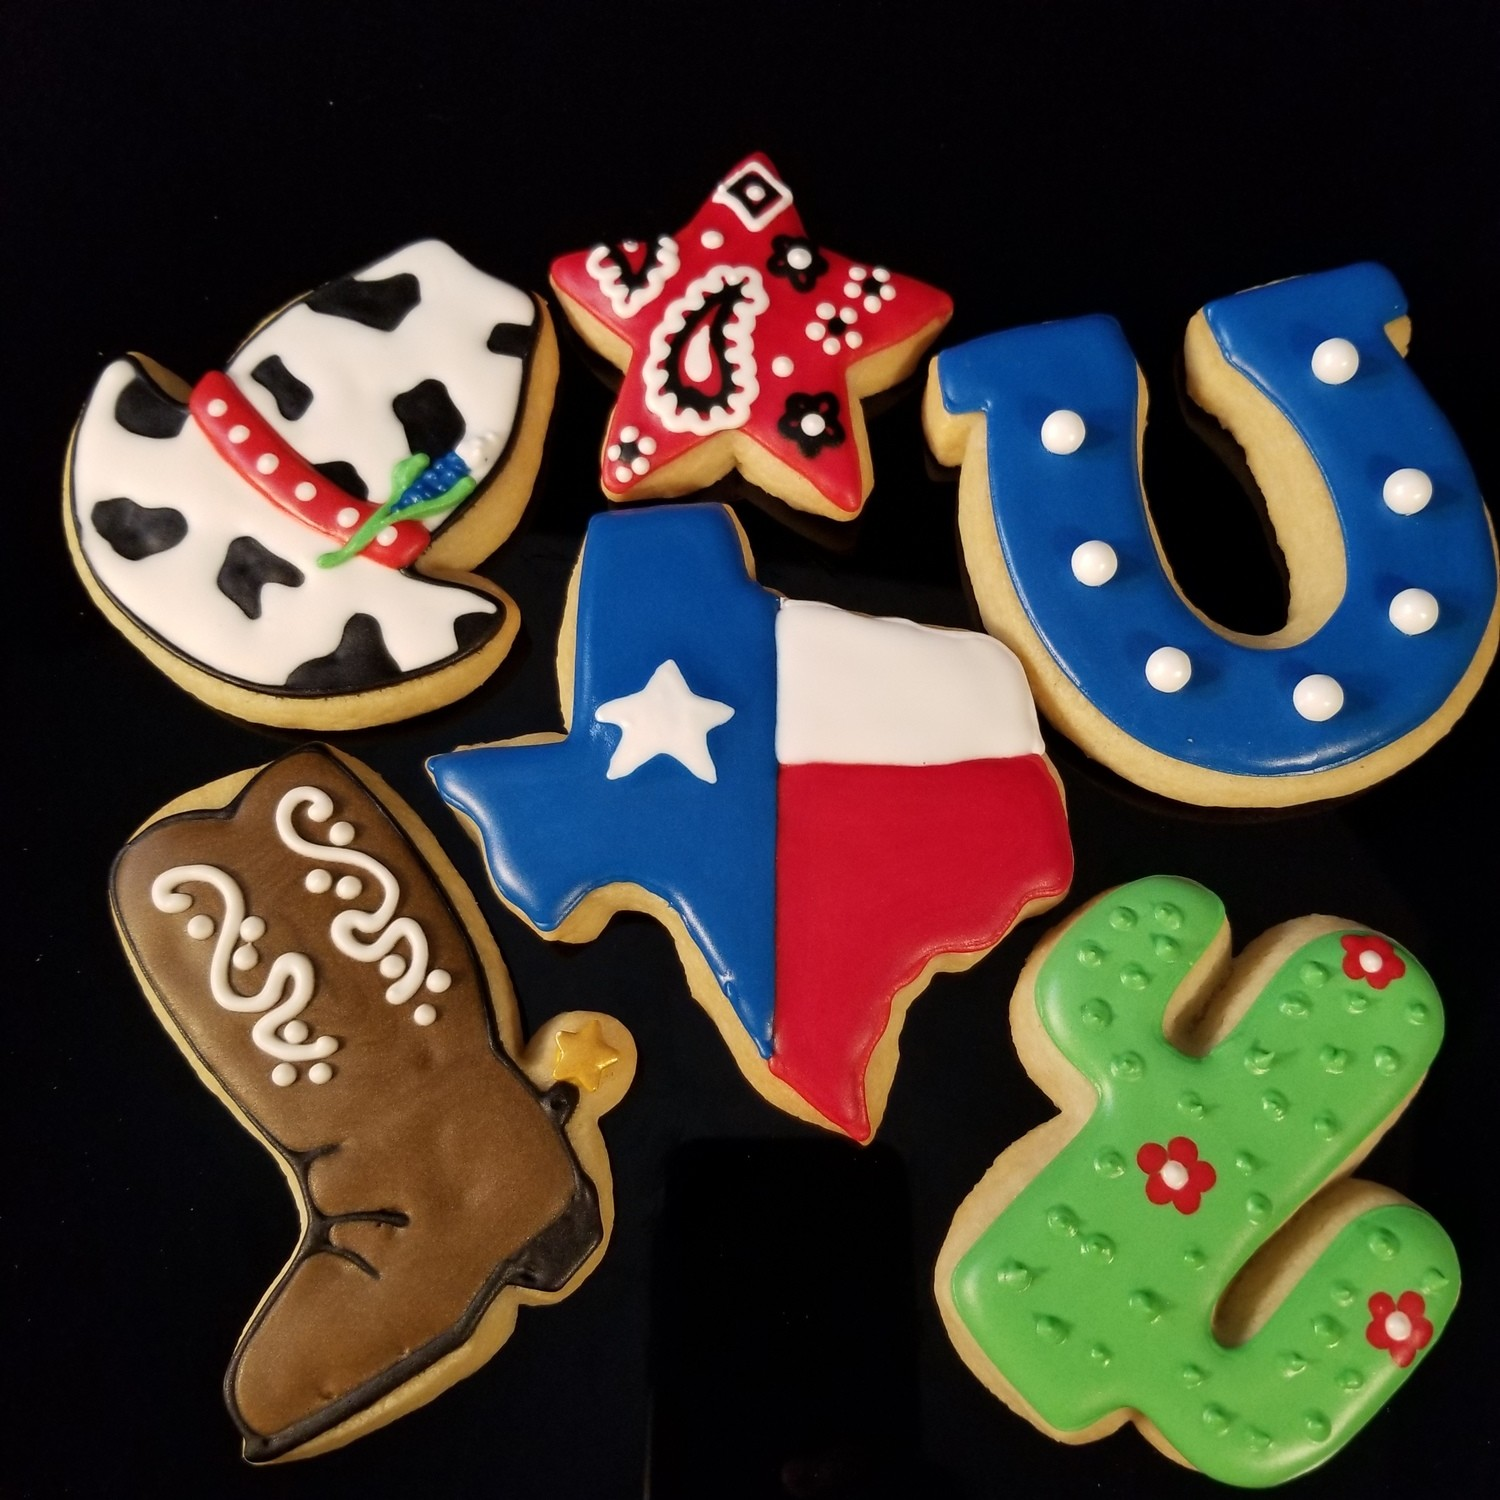 TEXAS Decorating Workshop - SUNDAY, MARCH 31, 2019 at 3:00 p.m. (THE POTPOURRI HOUSE) - SENIOR TICKET (Age 55+)